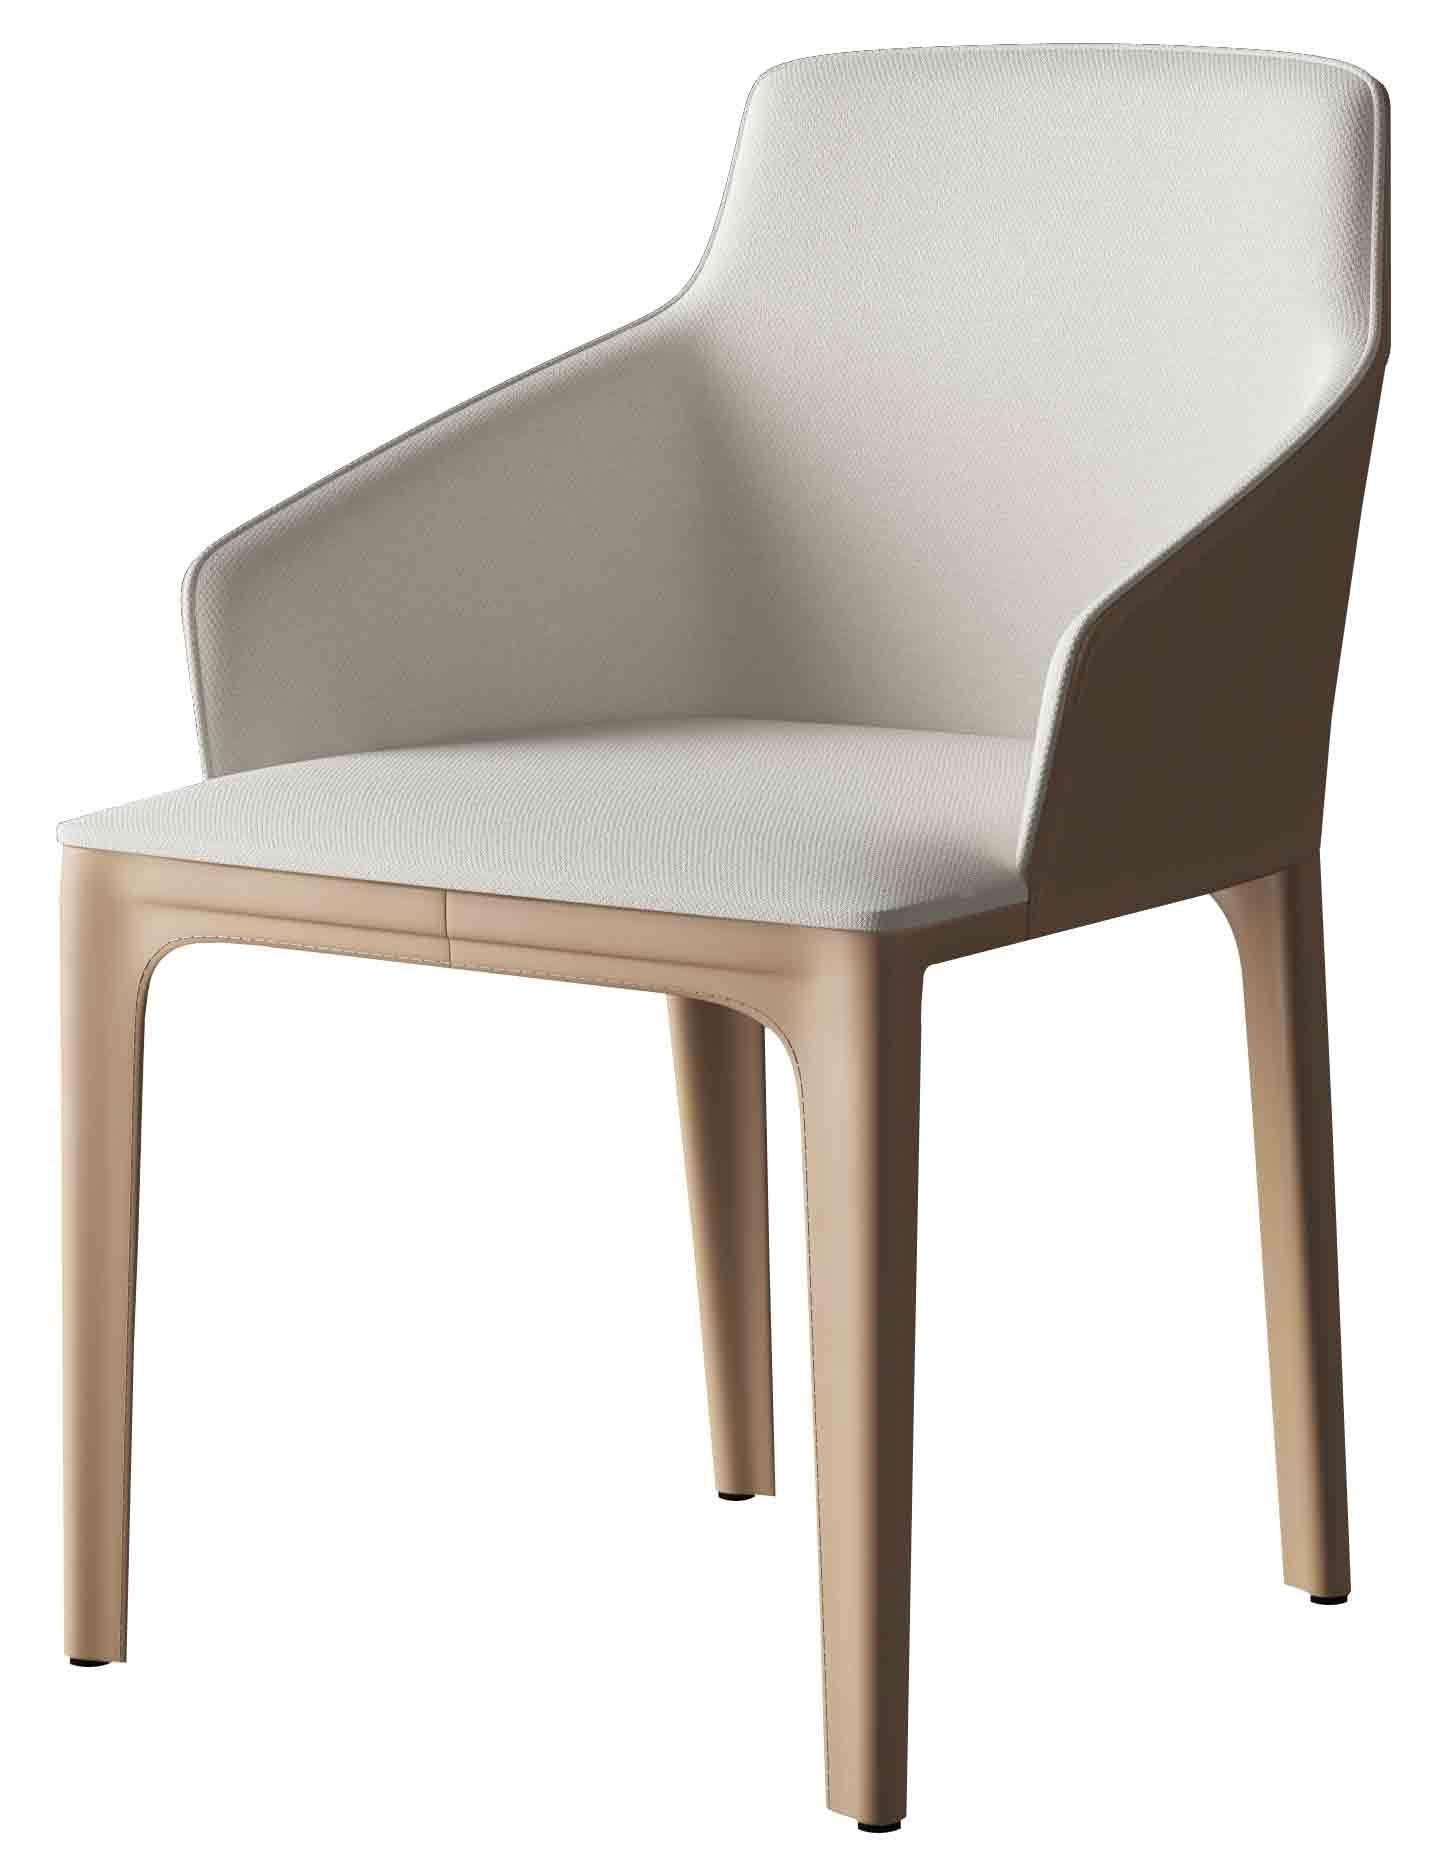 Modloft Oxford Dining Chair With Images High Back Dining Chairs